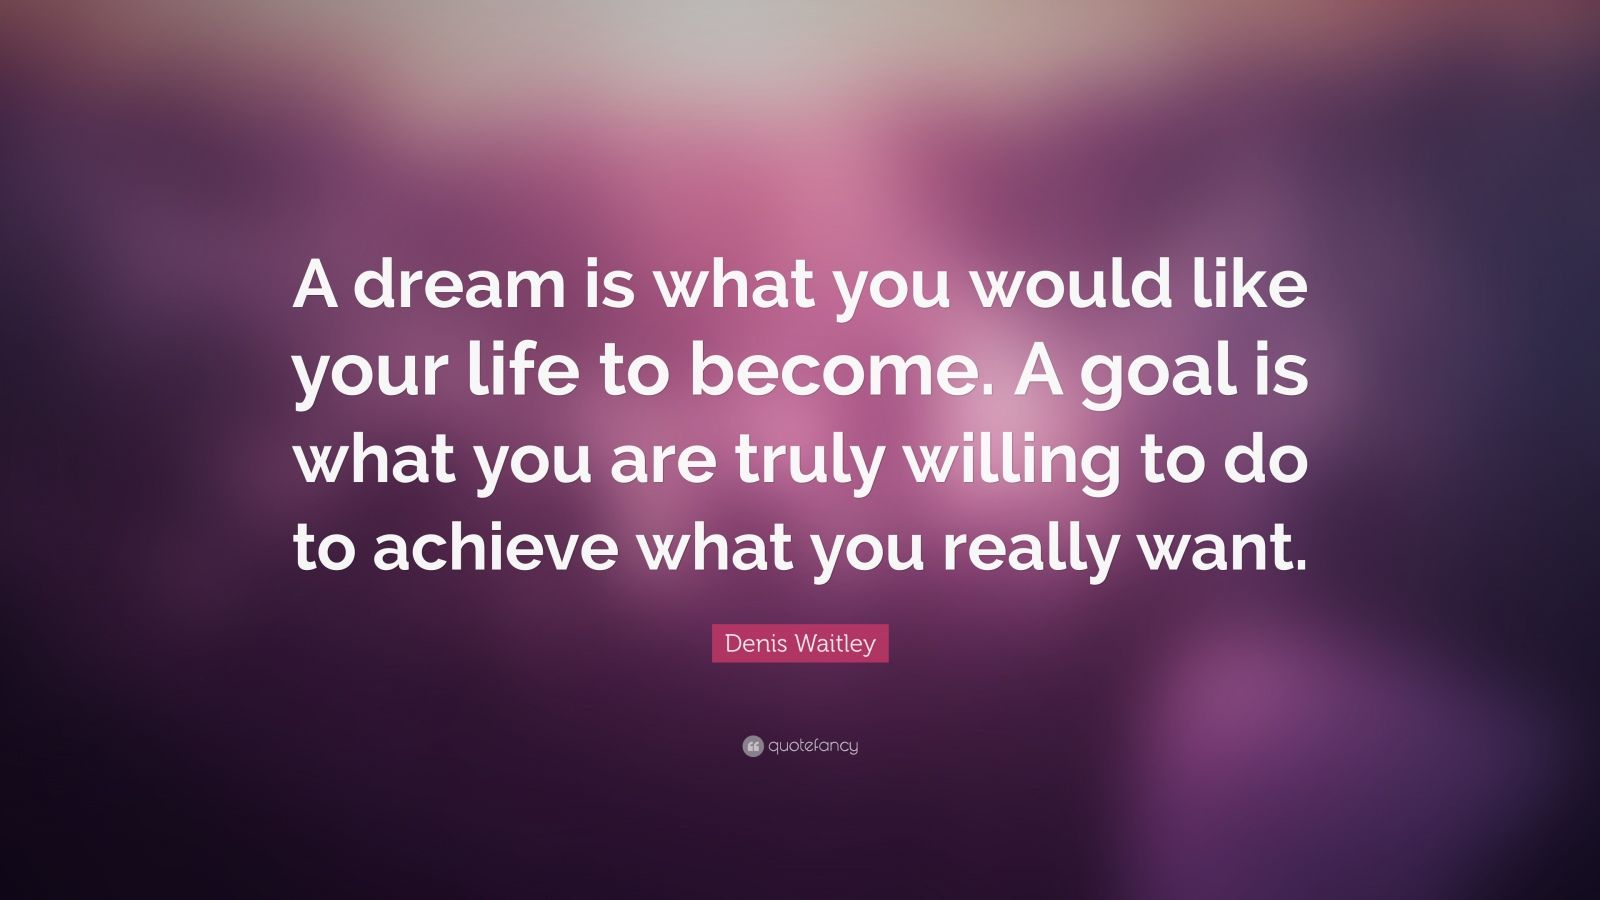 """Denis Waitley Quote: """"A dream is what you would like your life to become. A goal is what you are truly willing to do to achieve what you really want."""""""